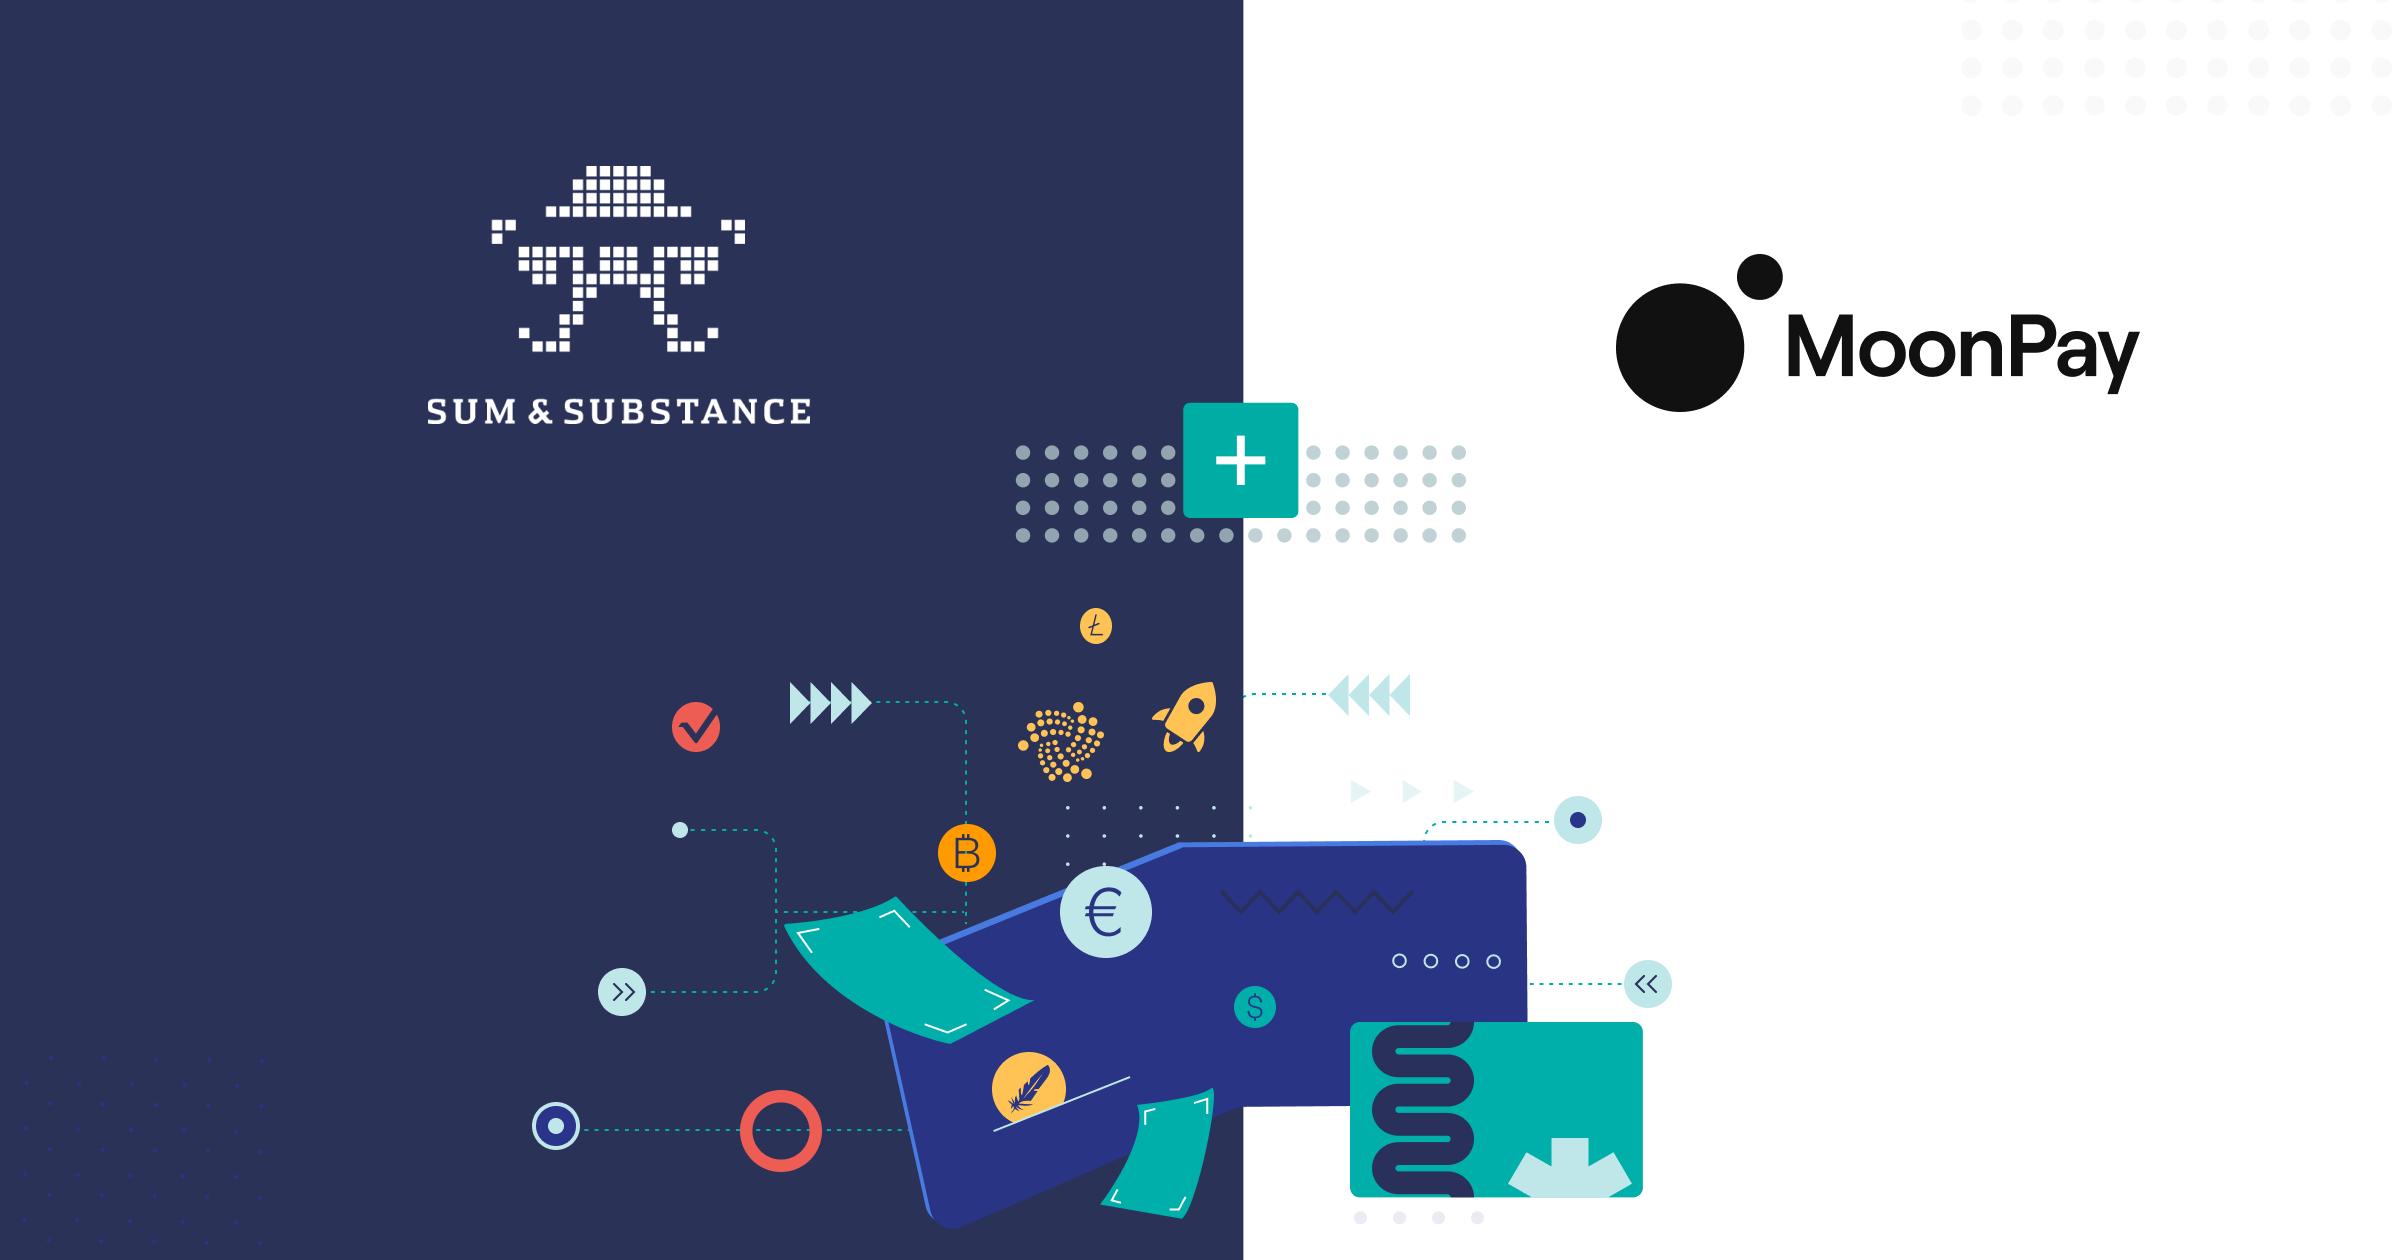 MoonPay Partners with Sumsub to Bolster its KYC Processes